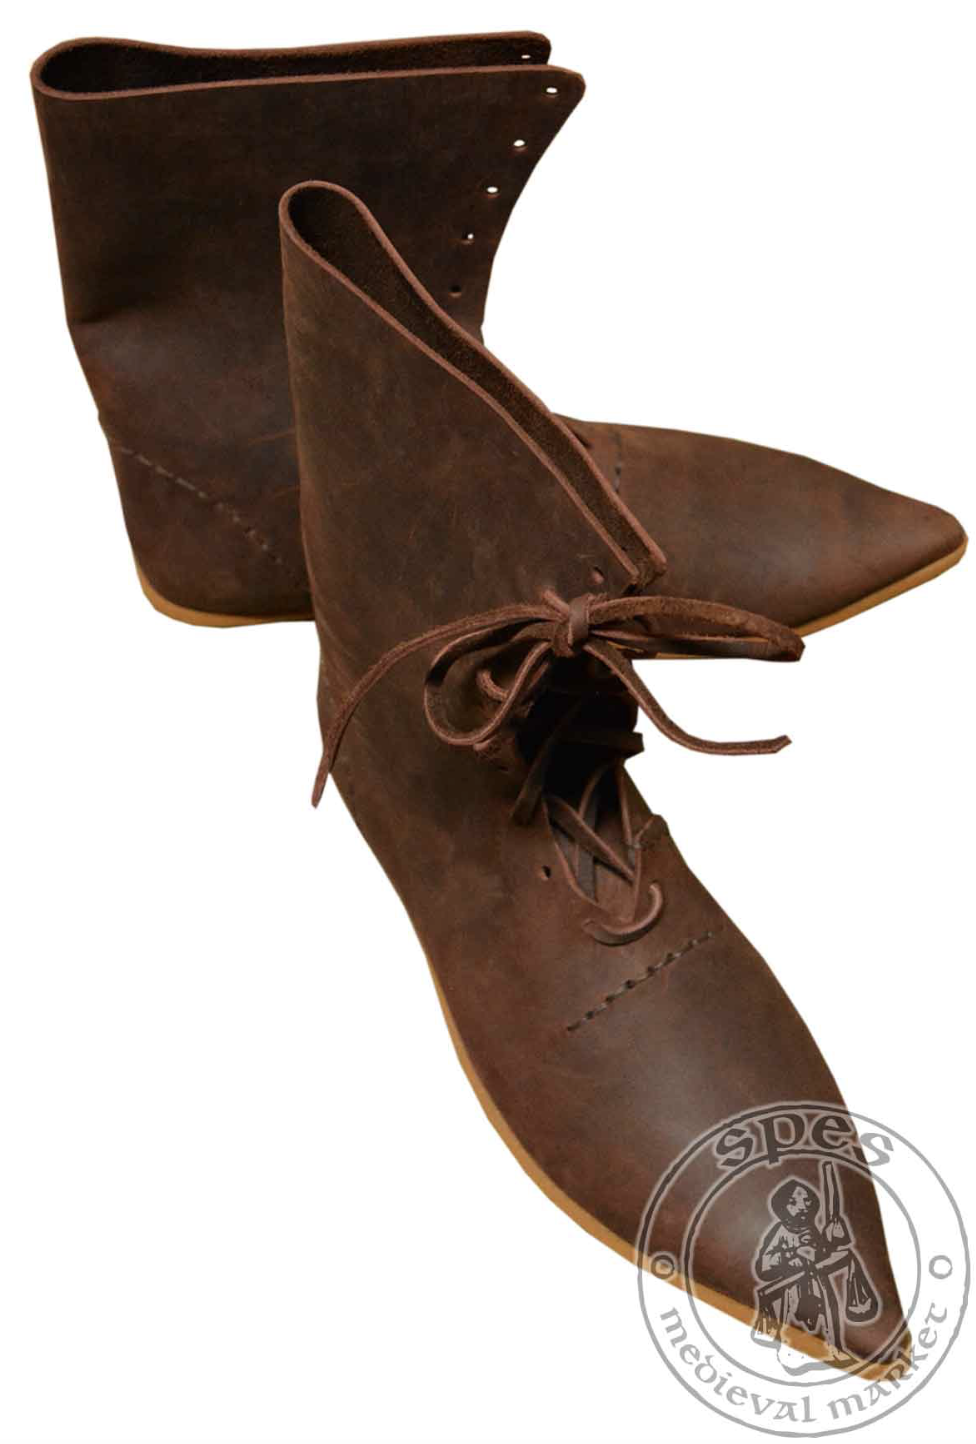 Chaussures Homme : MS1433 - 225 €